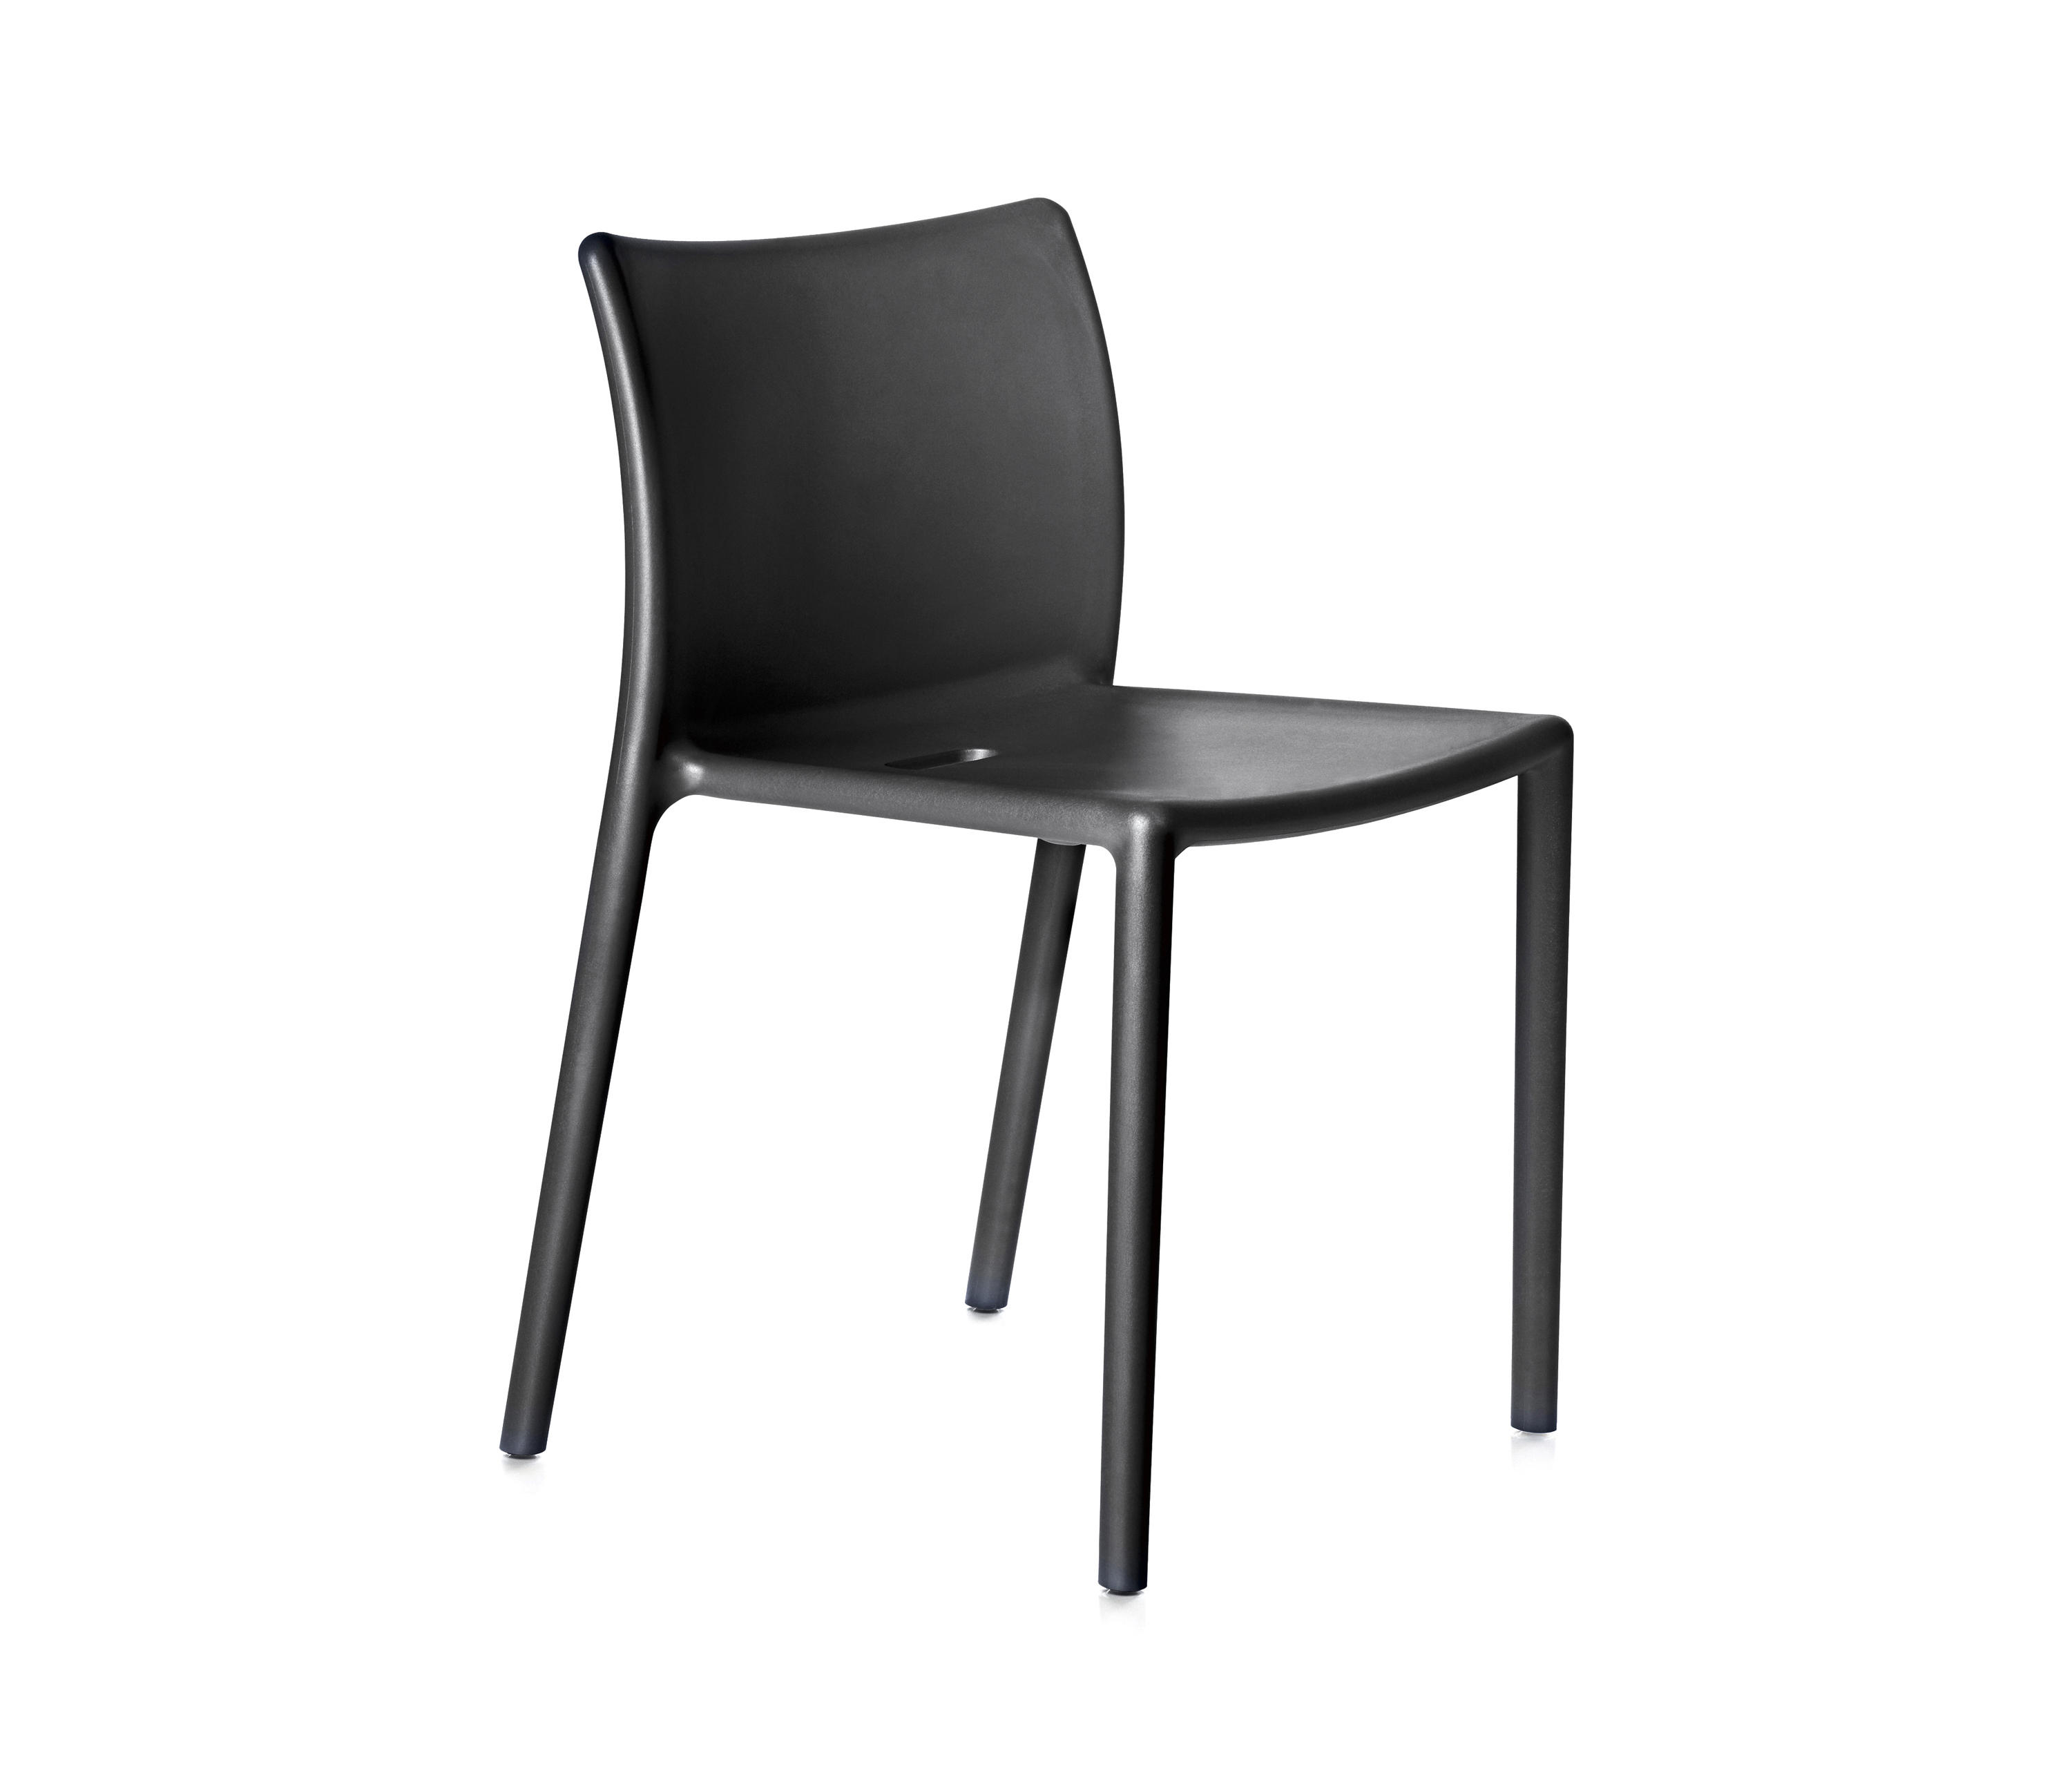 Air chair multipurpose chairs from magis architonic for Magis stuhl